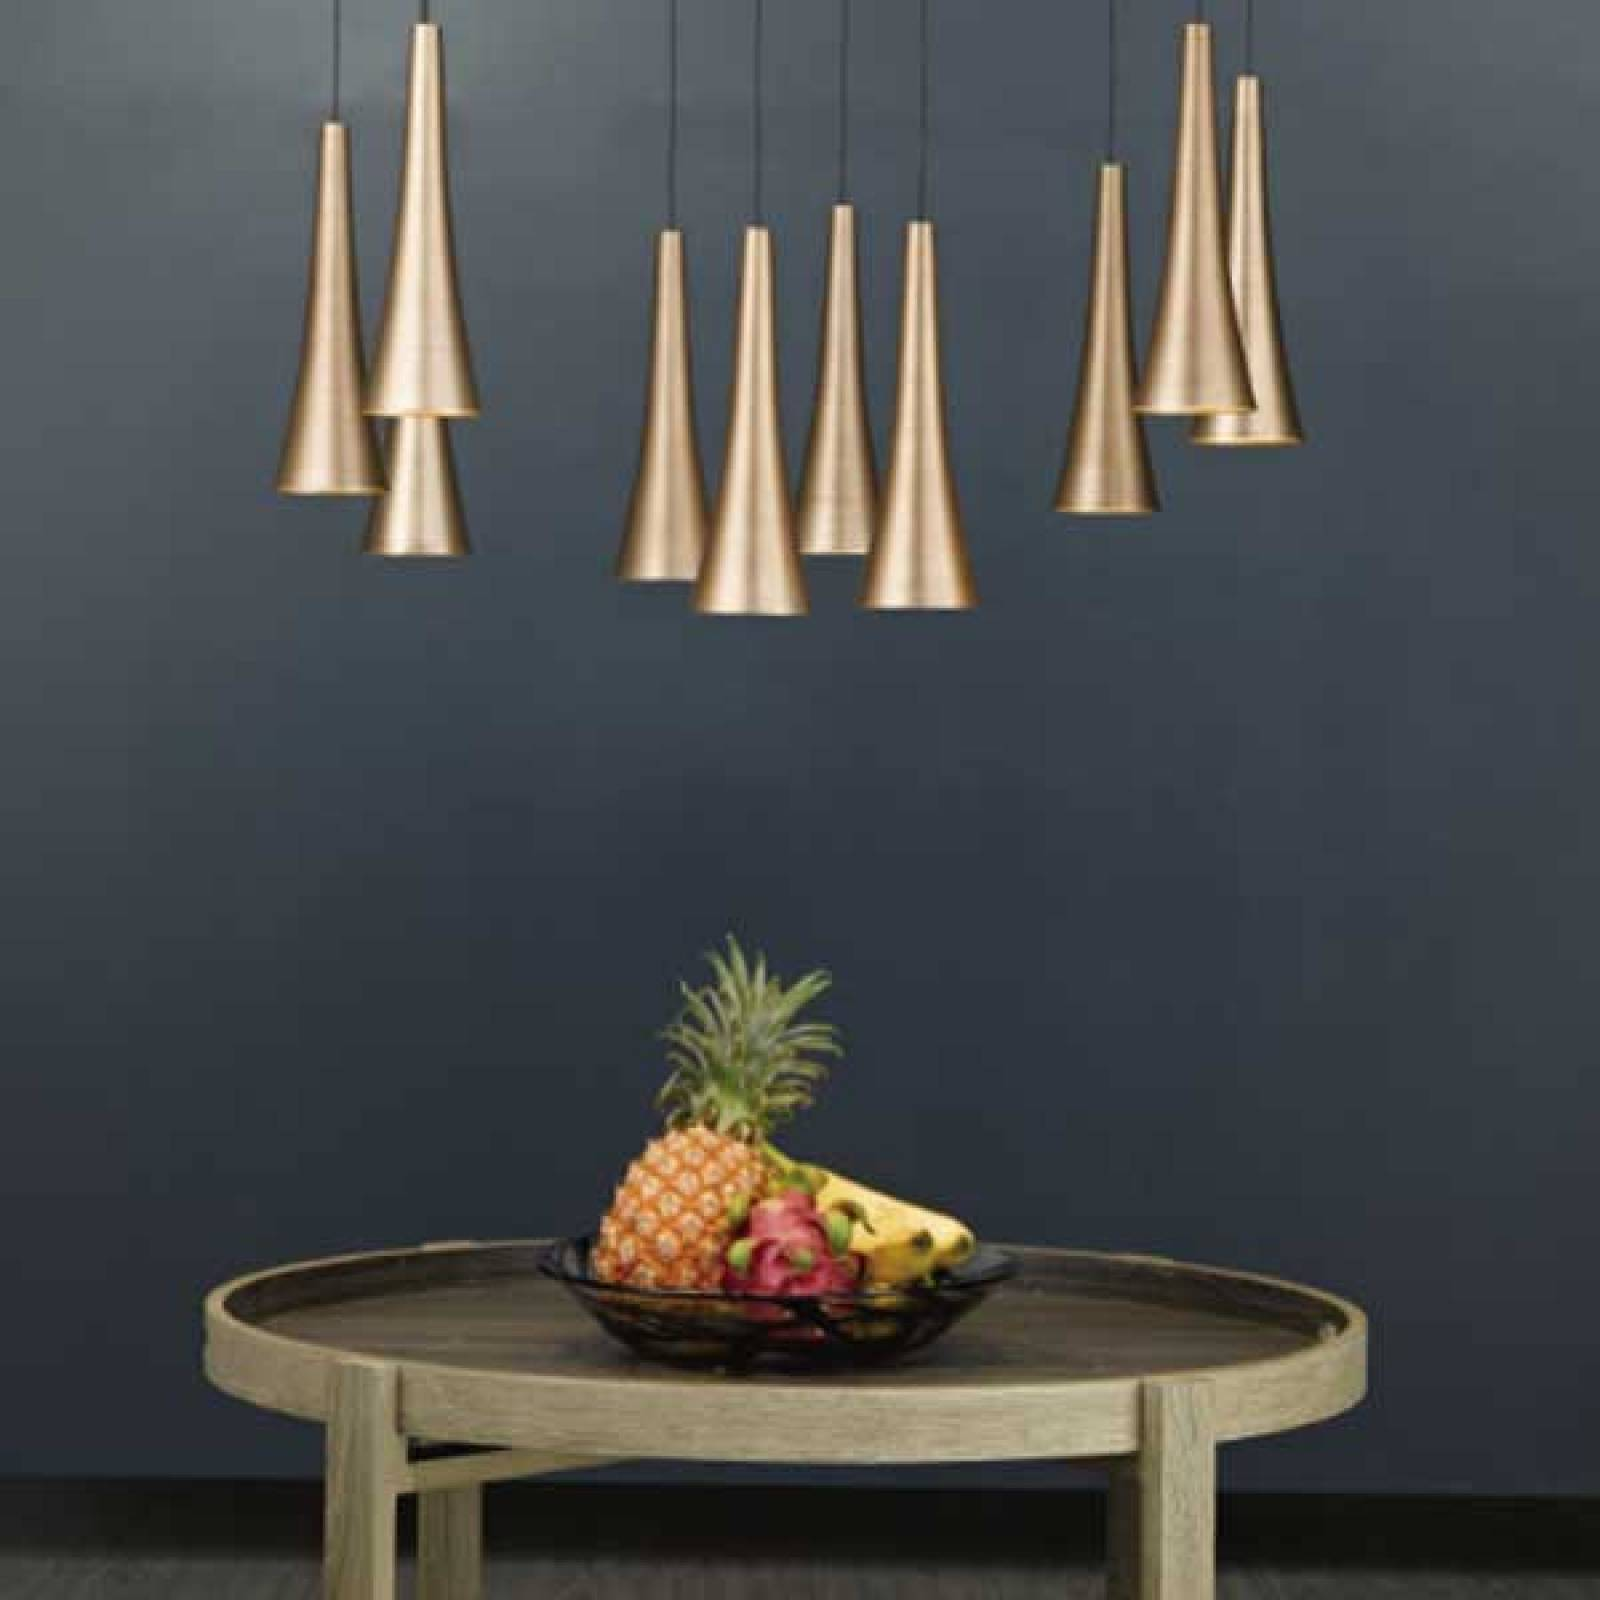 Trombone Pendant Light Shades With Fitting thumbnails